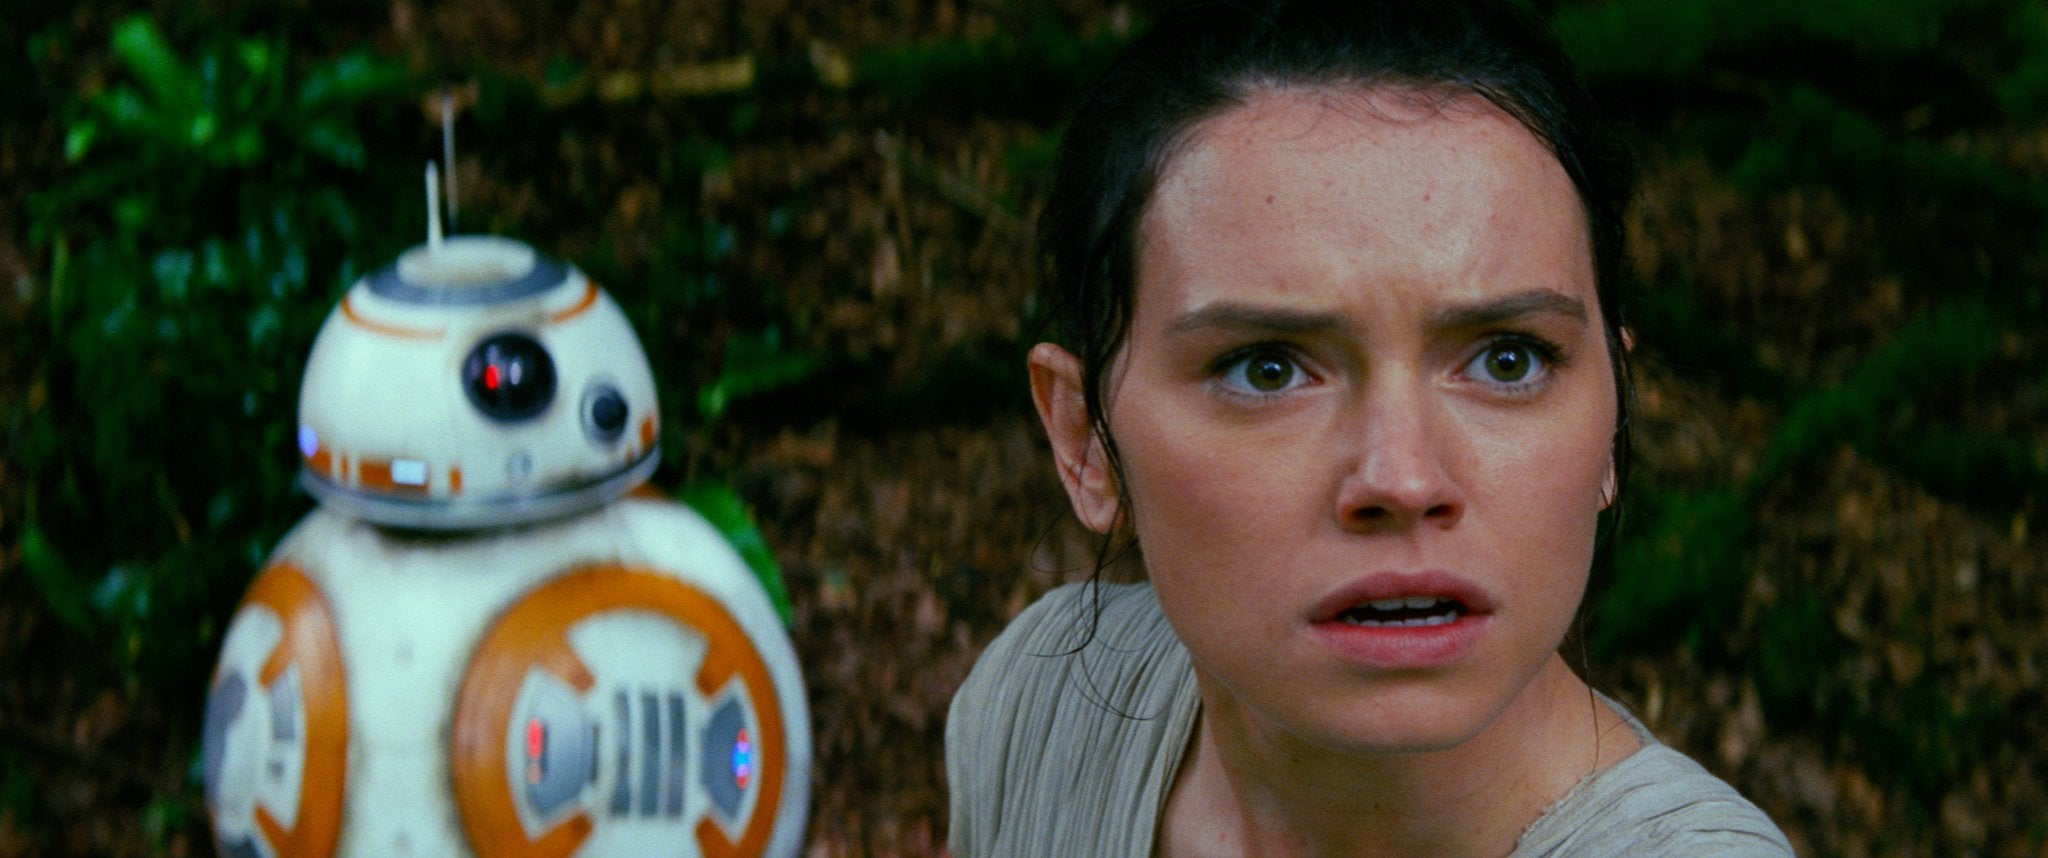 Rey's Parents Are Not In Star Wars: The Force Awakens